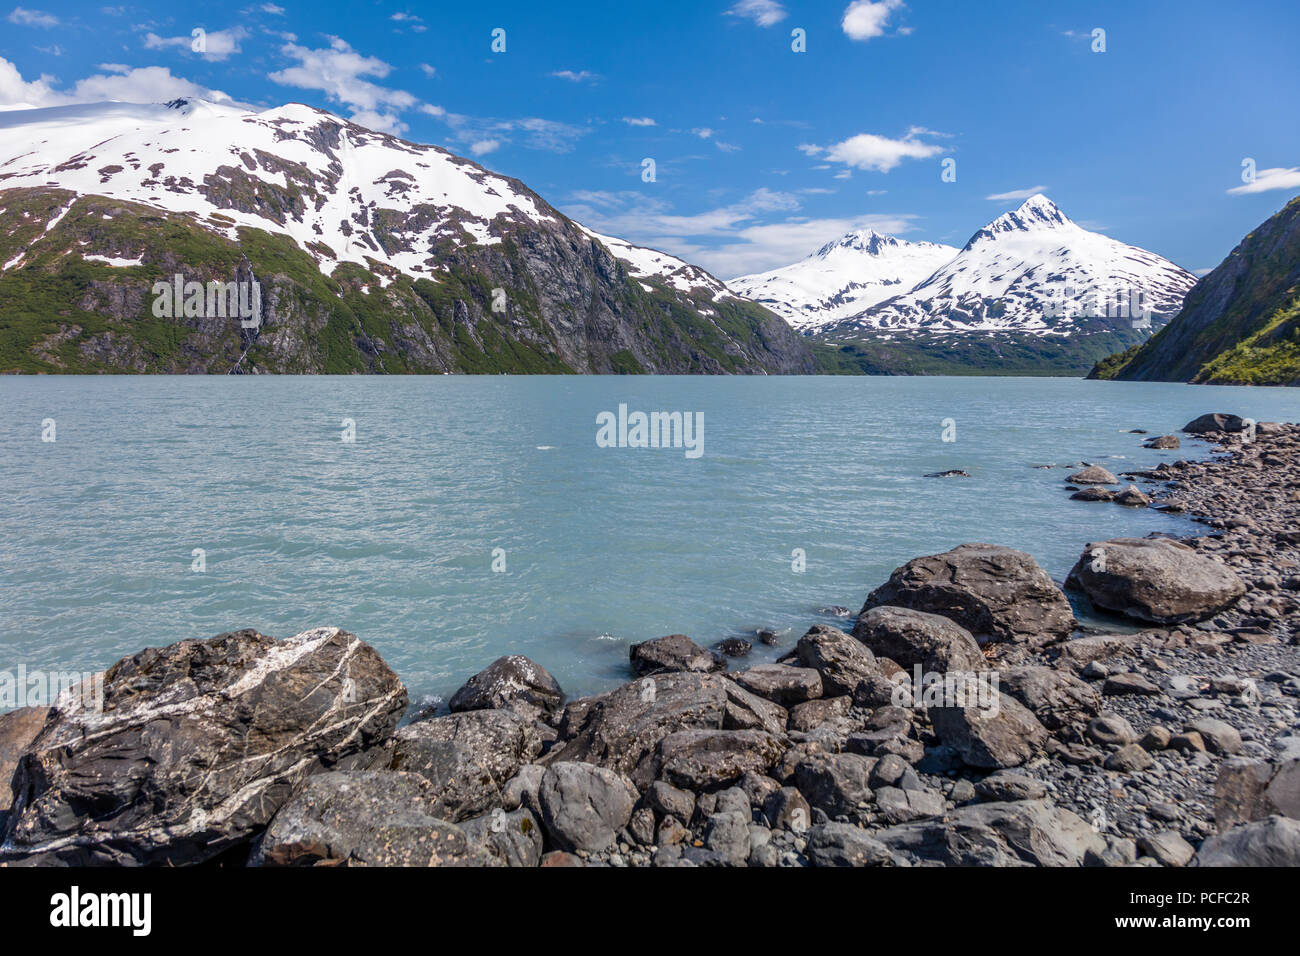 Snow capped mountains around Portage Lake which  is a glacial lake in the Chugach National Forest on the Kenai Peninsula of Alaska - Stock Image